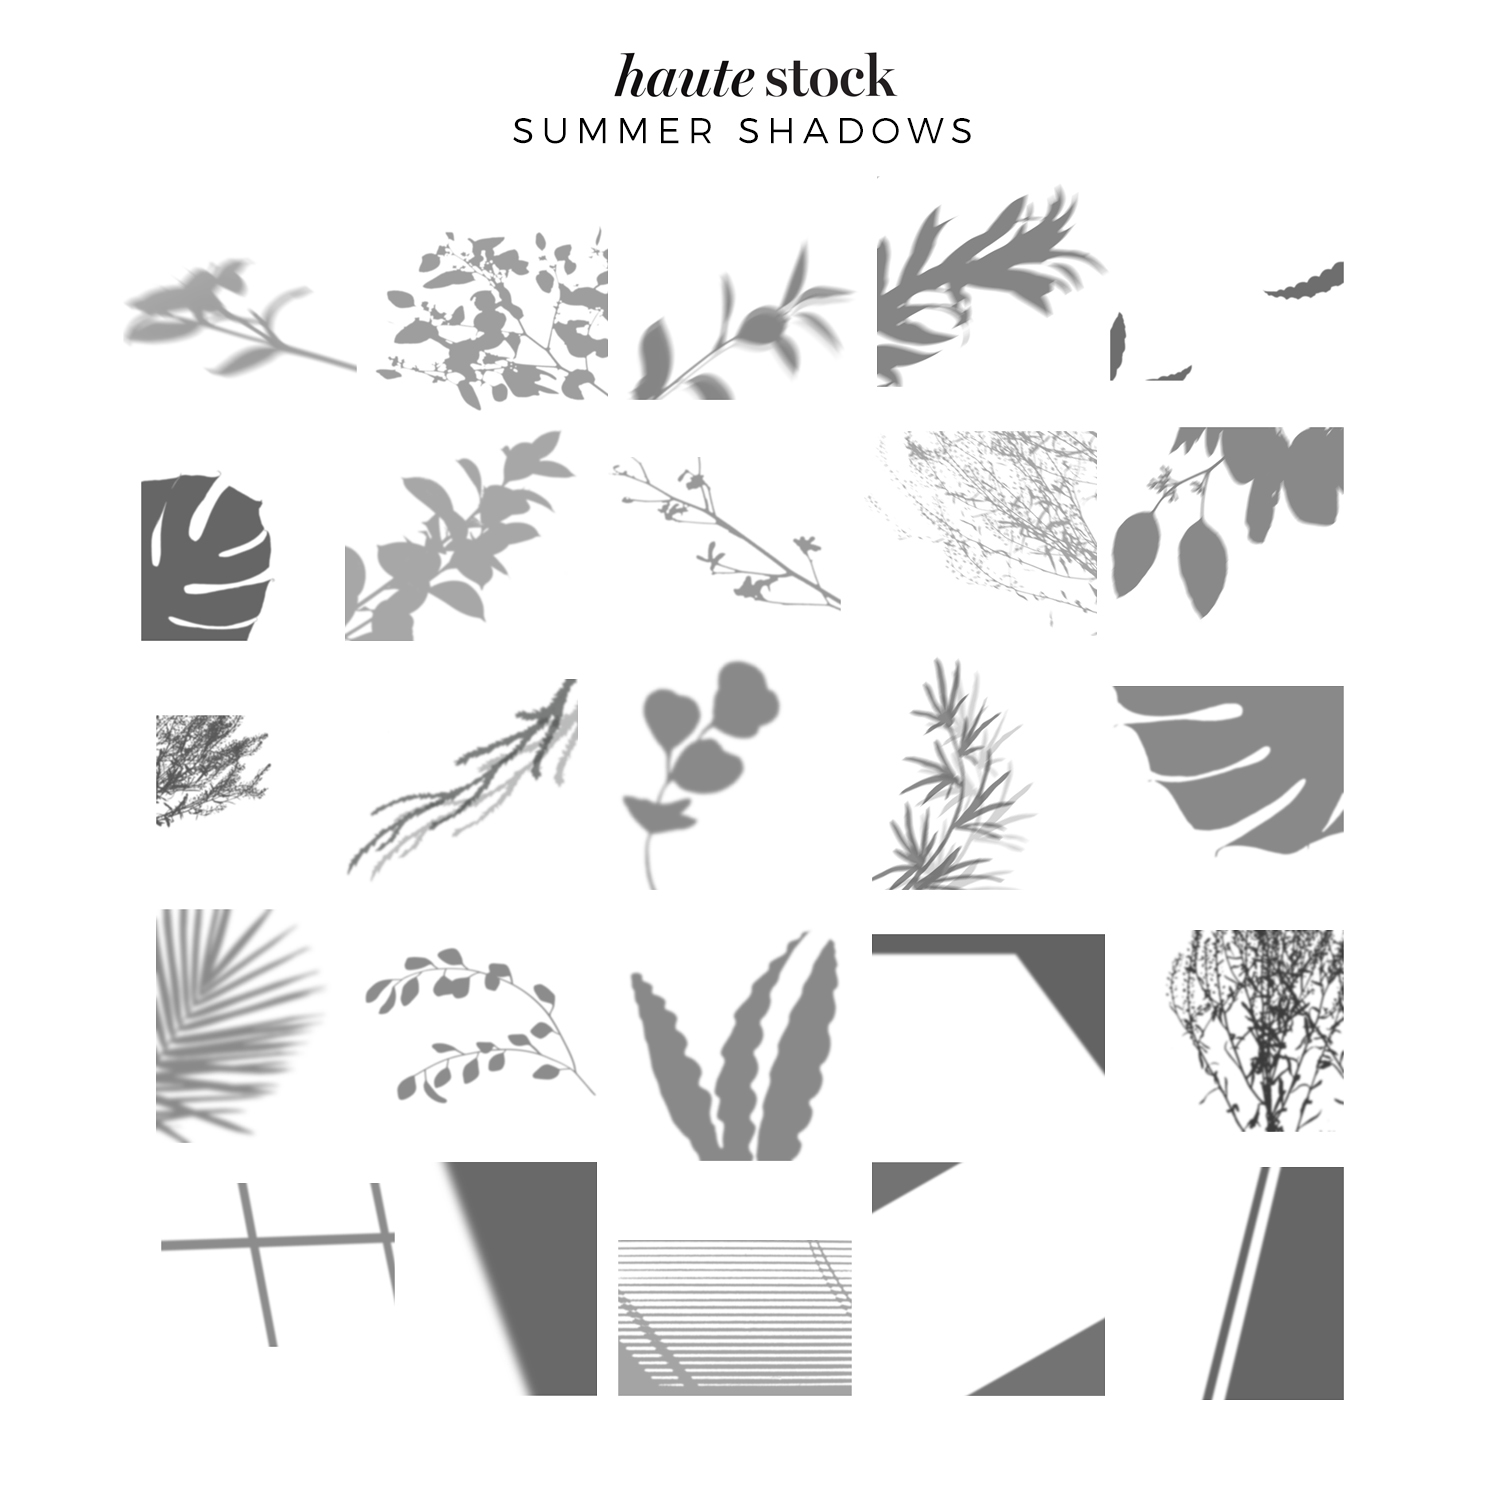 Botanical & abstract shadow overlays for mood-setting graphics for your brand from Haute Stock! Click to see a design tutorial on how to use these graphics in your own designs!